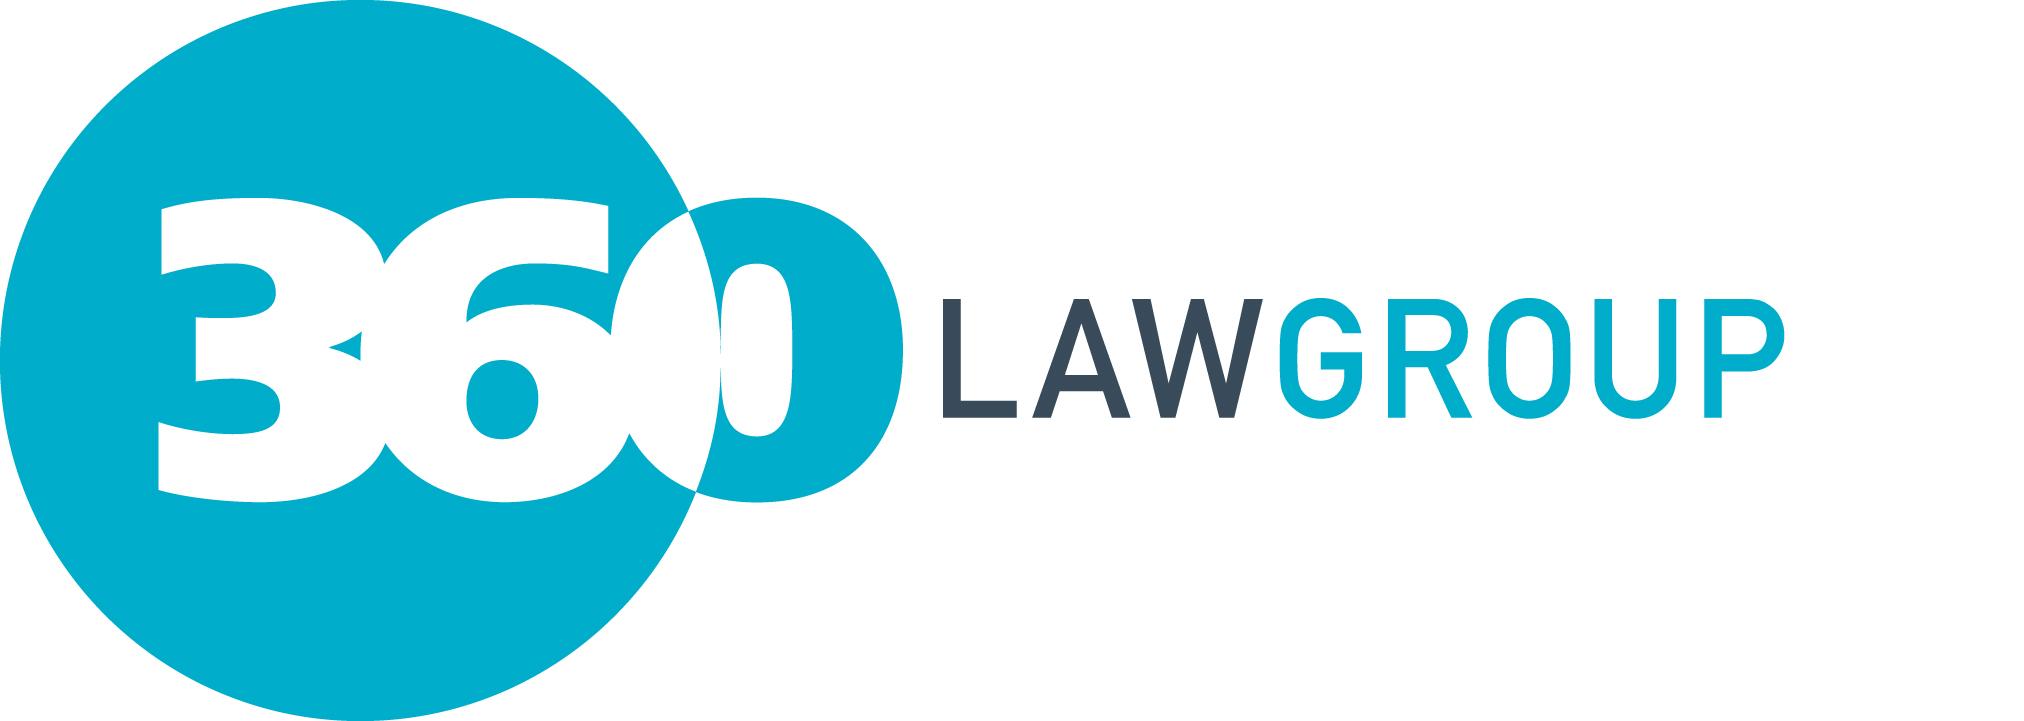 360 Law Group Limited